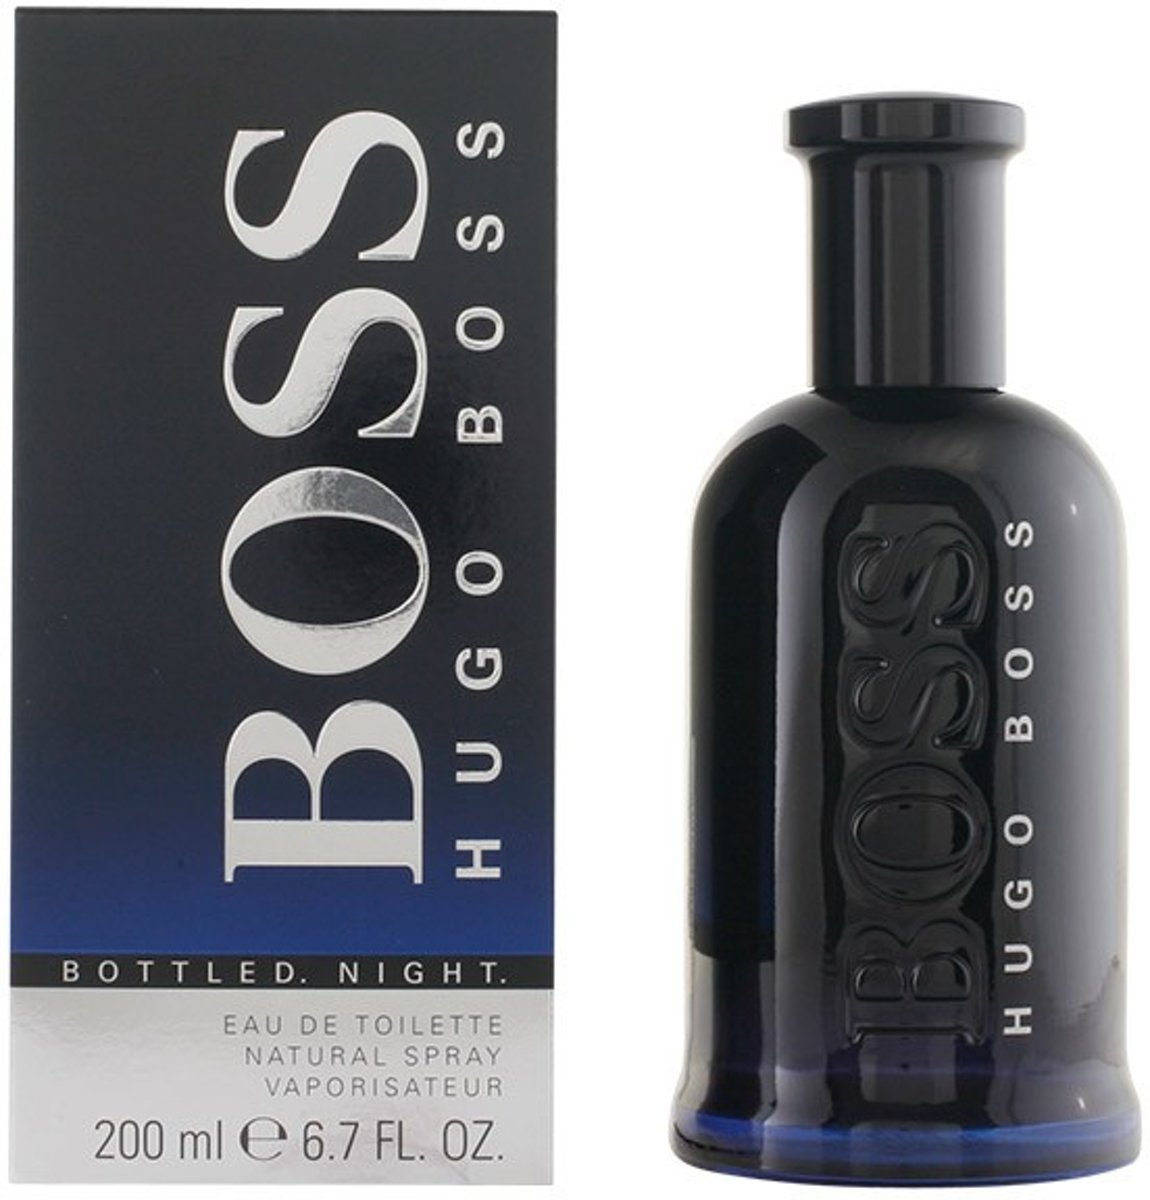 MULTI BUNDEL 2 stuks BOSS BOTTLED NIGHT Eau de Toilette Spray 200 ml